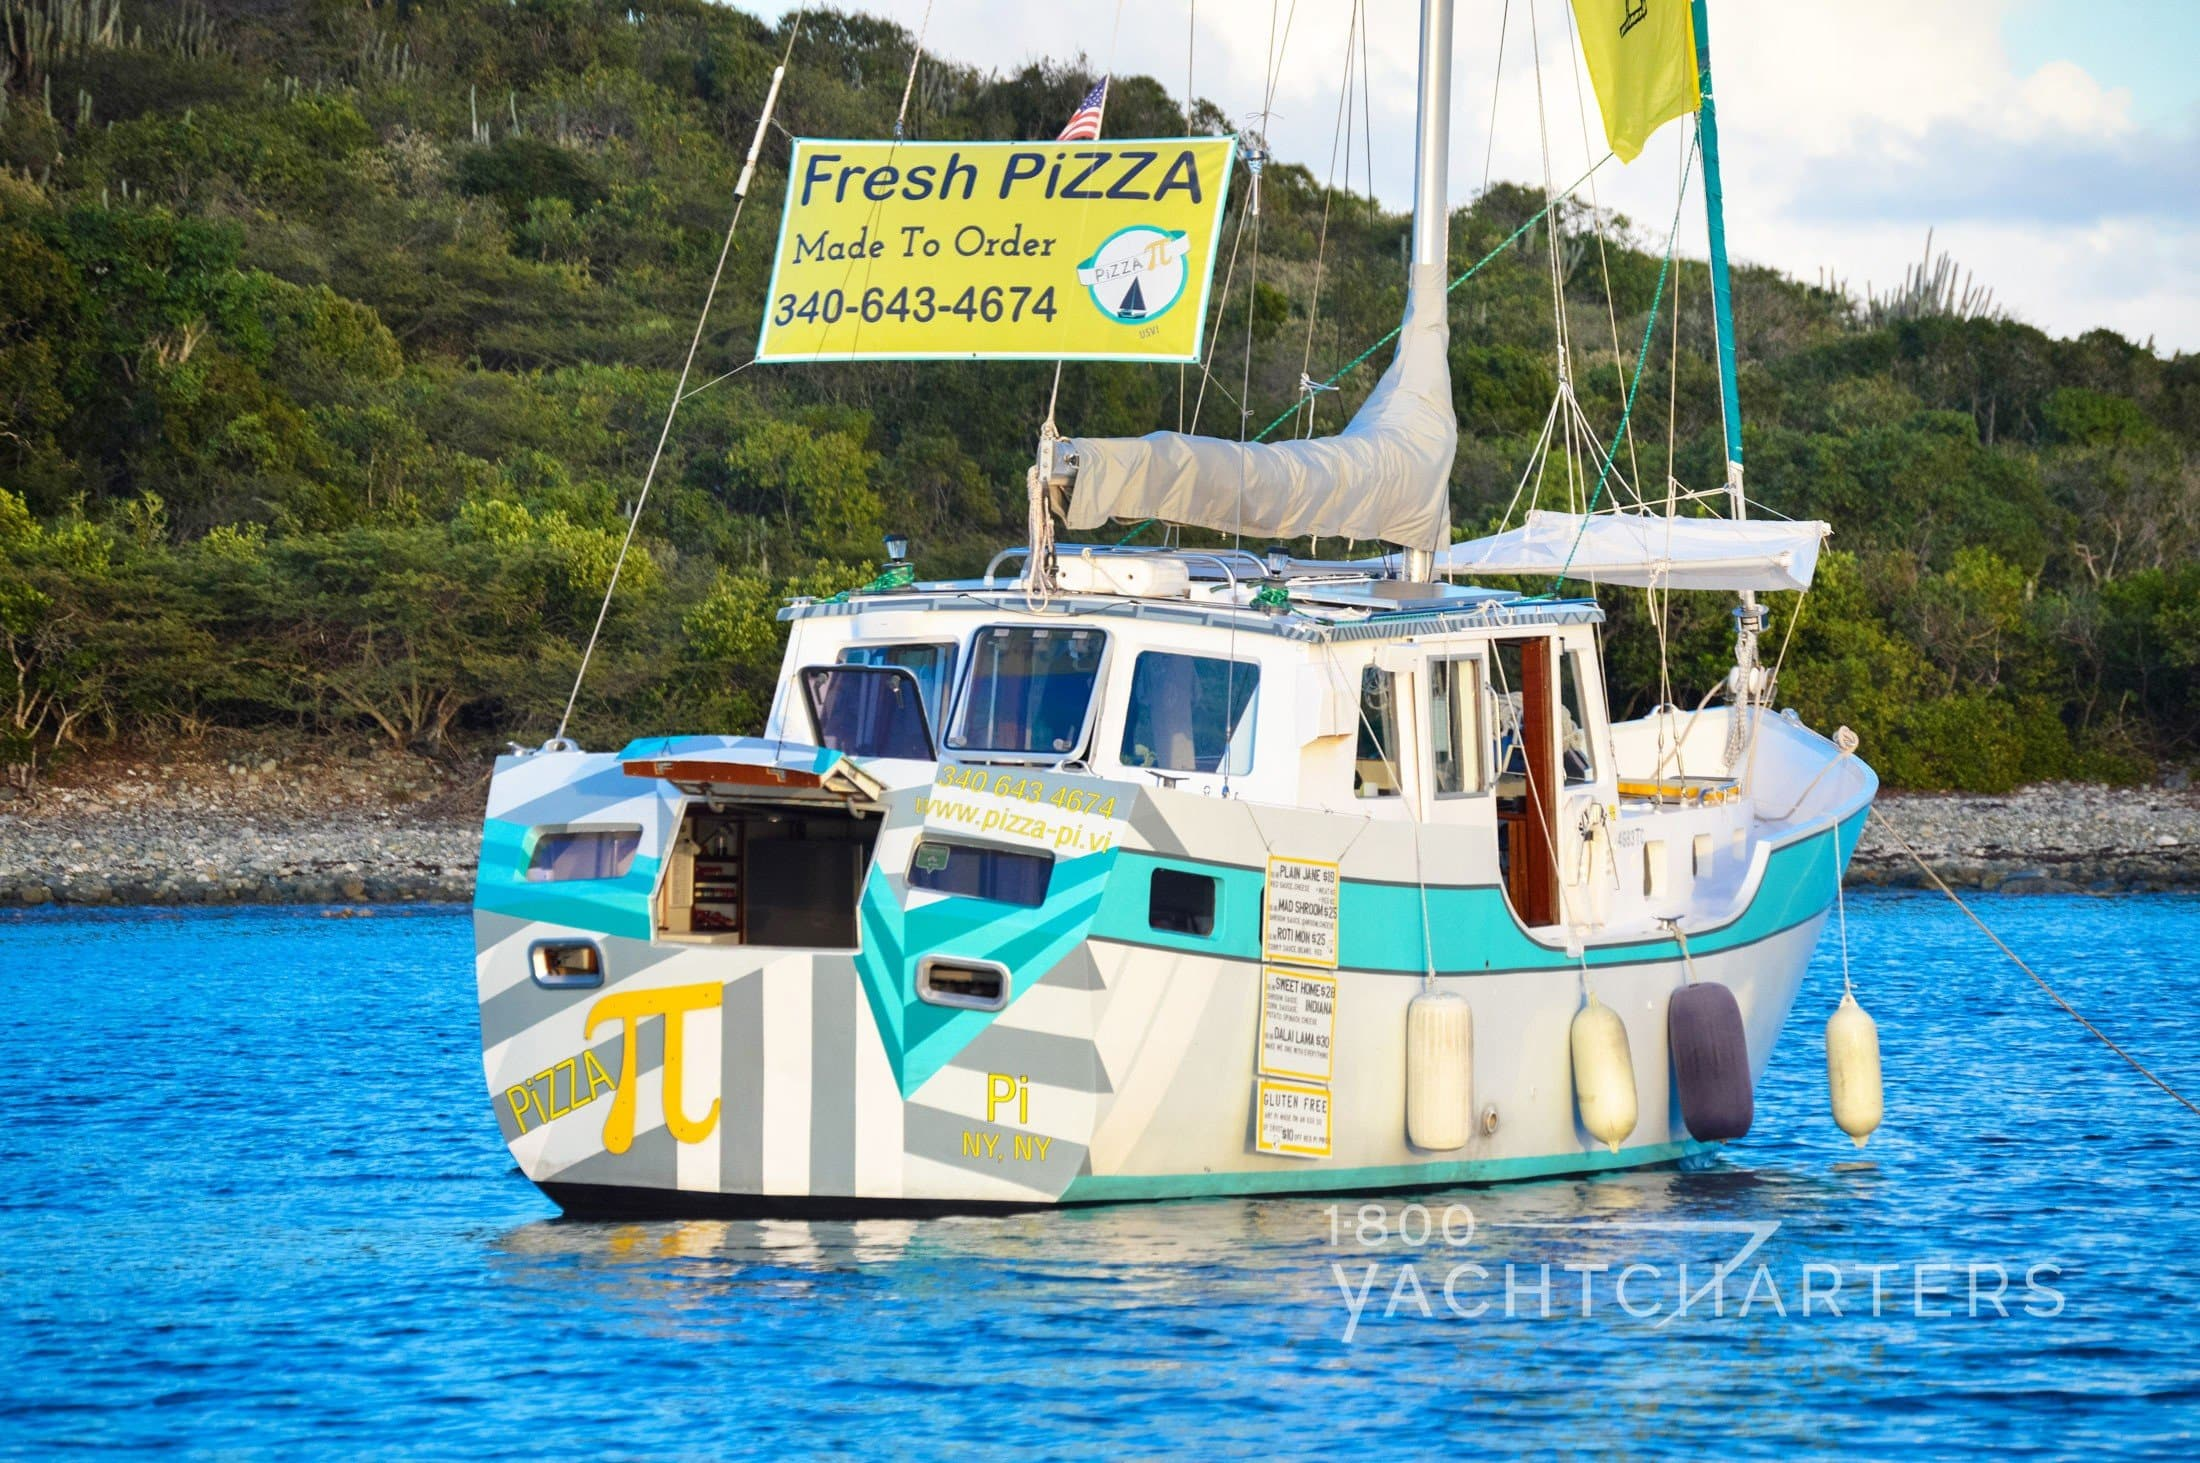 Pizza pi teal and white pizza sailboat anchored in St. Thomas USVI - advertisement for pizza on yellow sign hanging from sail lines